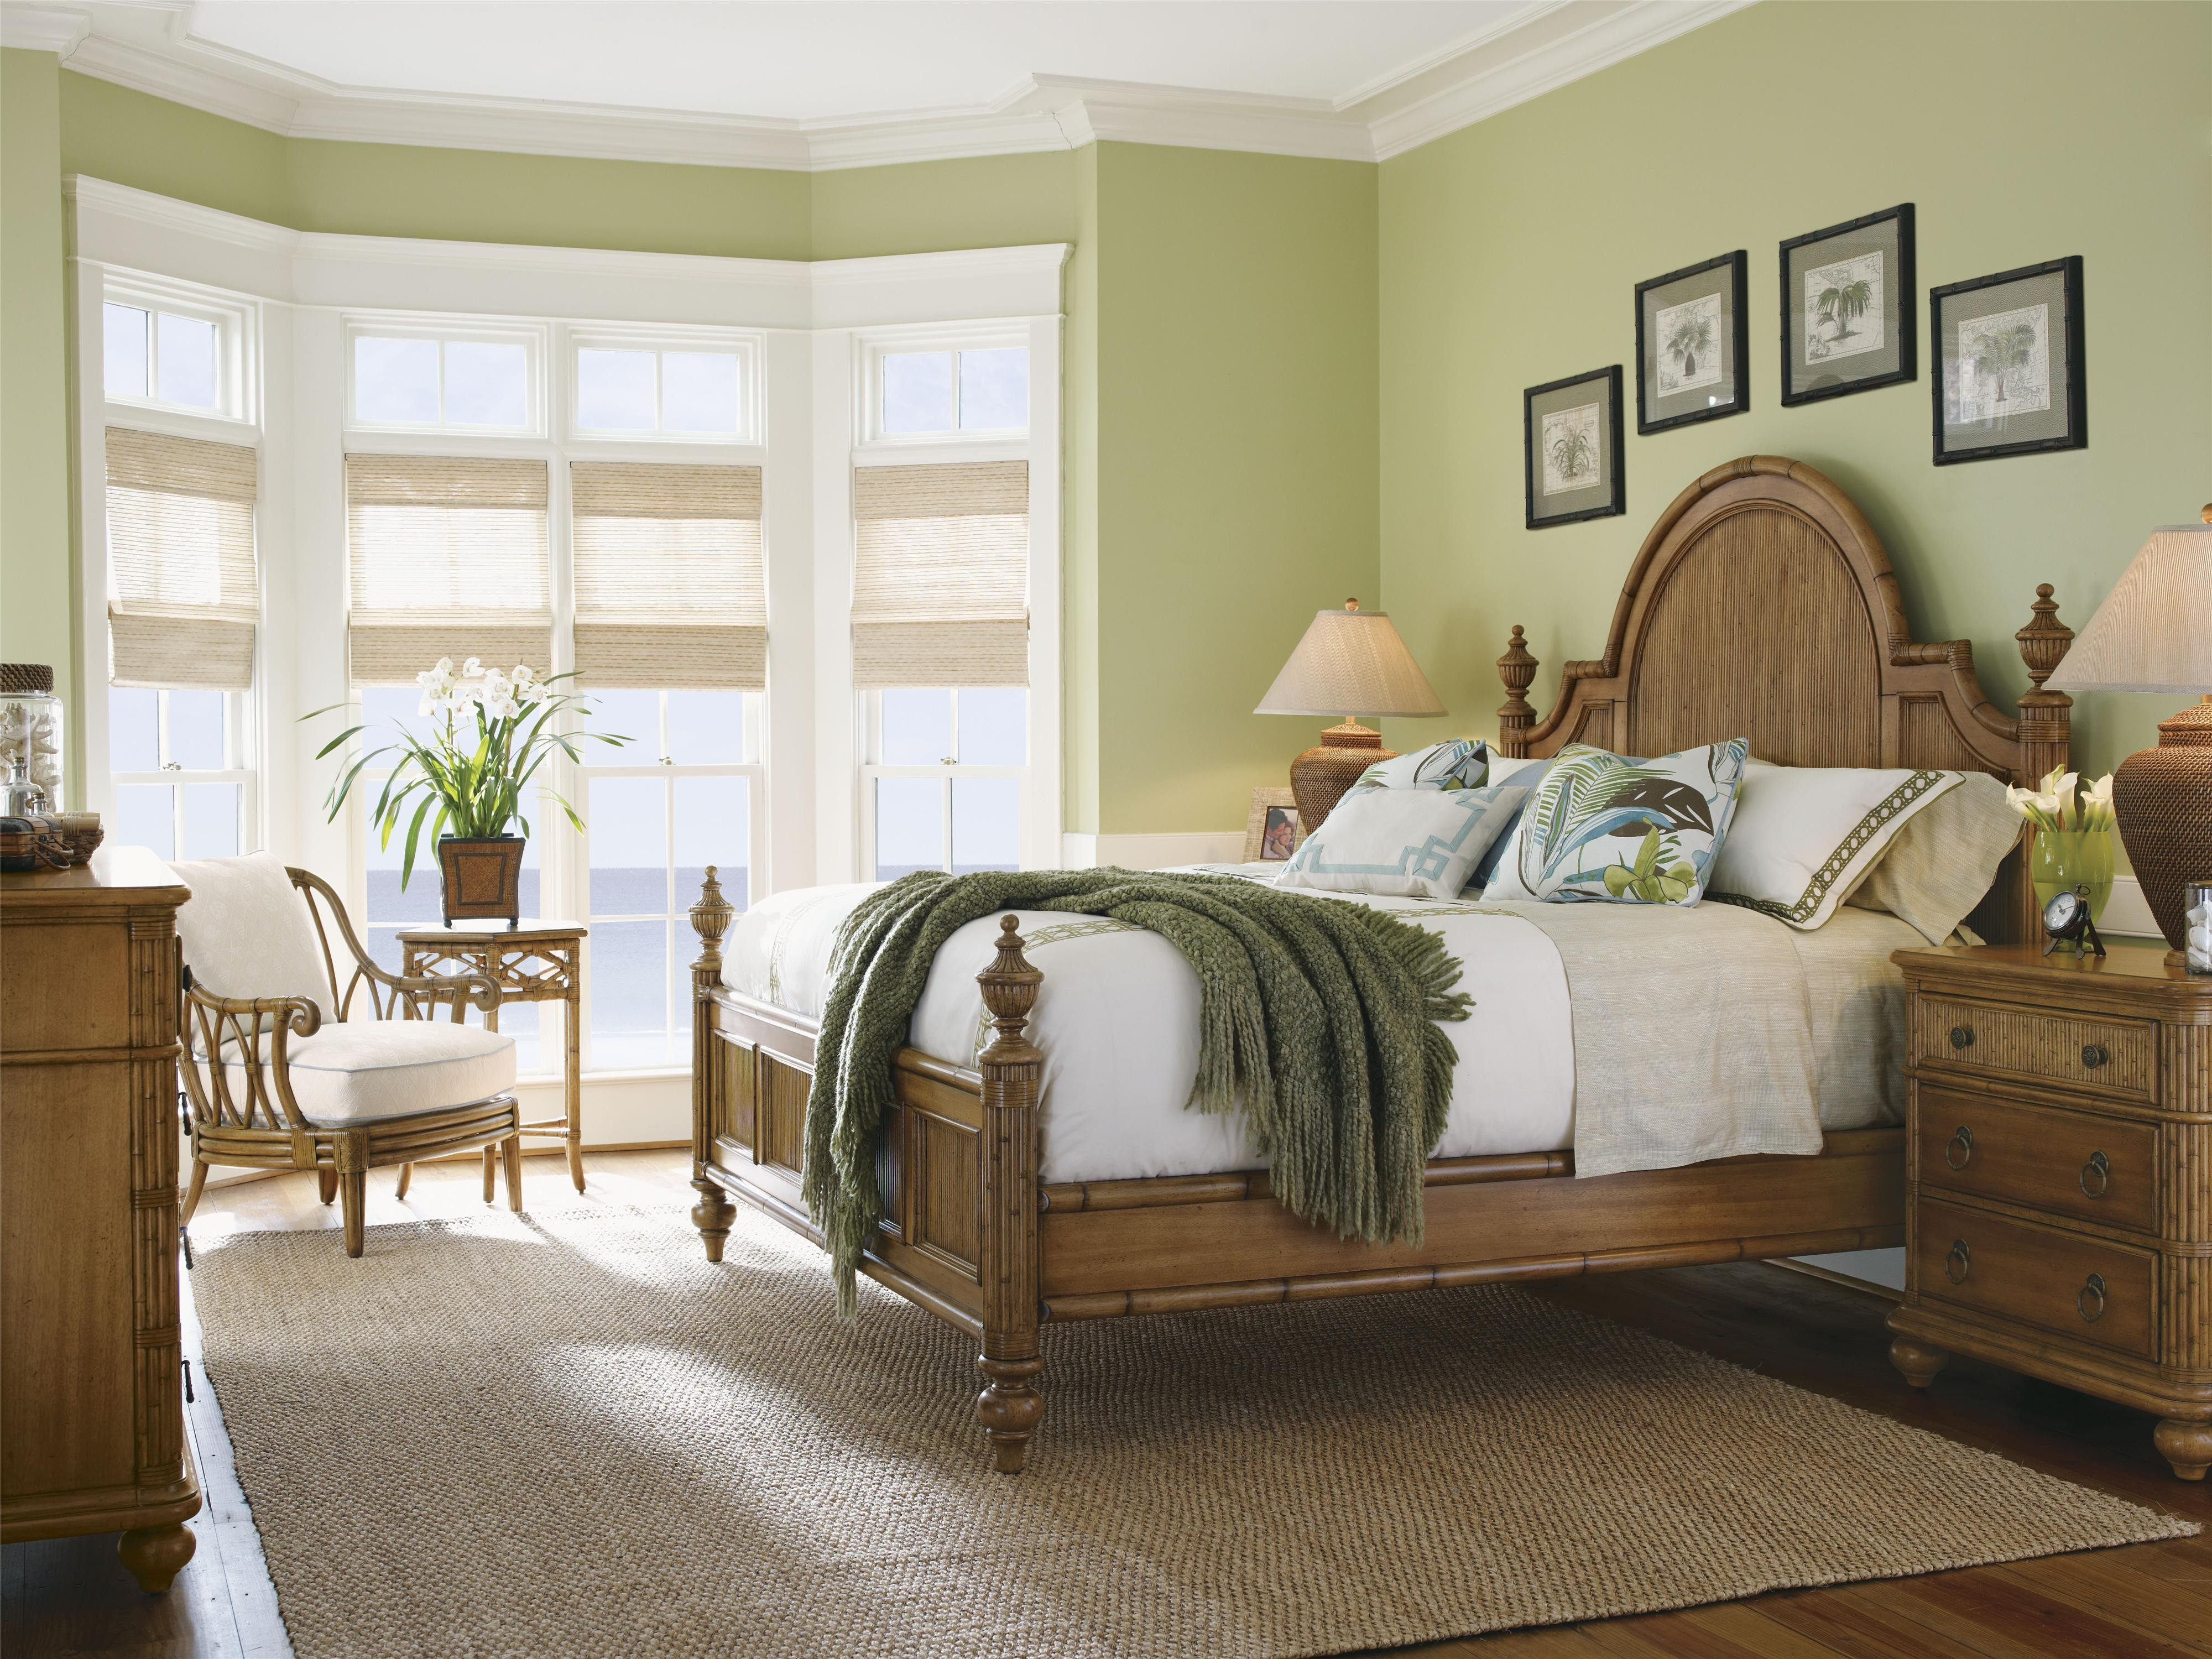 Tommy Bahama Bedroom Set Best Of Beach House 5701 61 by tommy Bahama Home C S Wo & sons